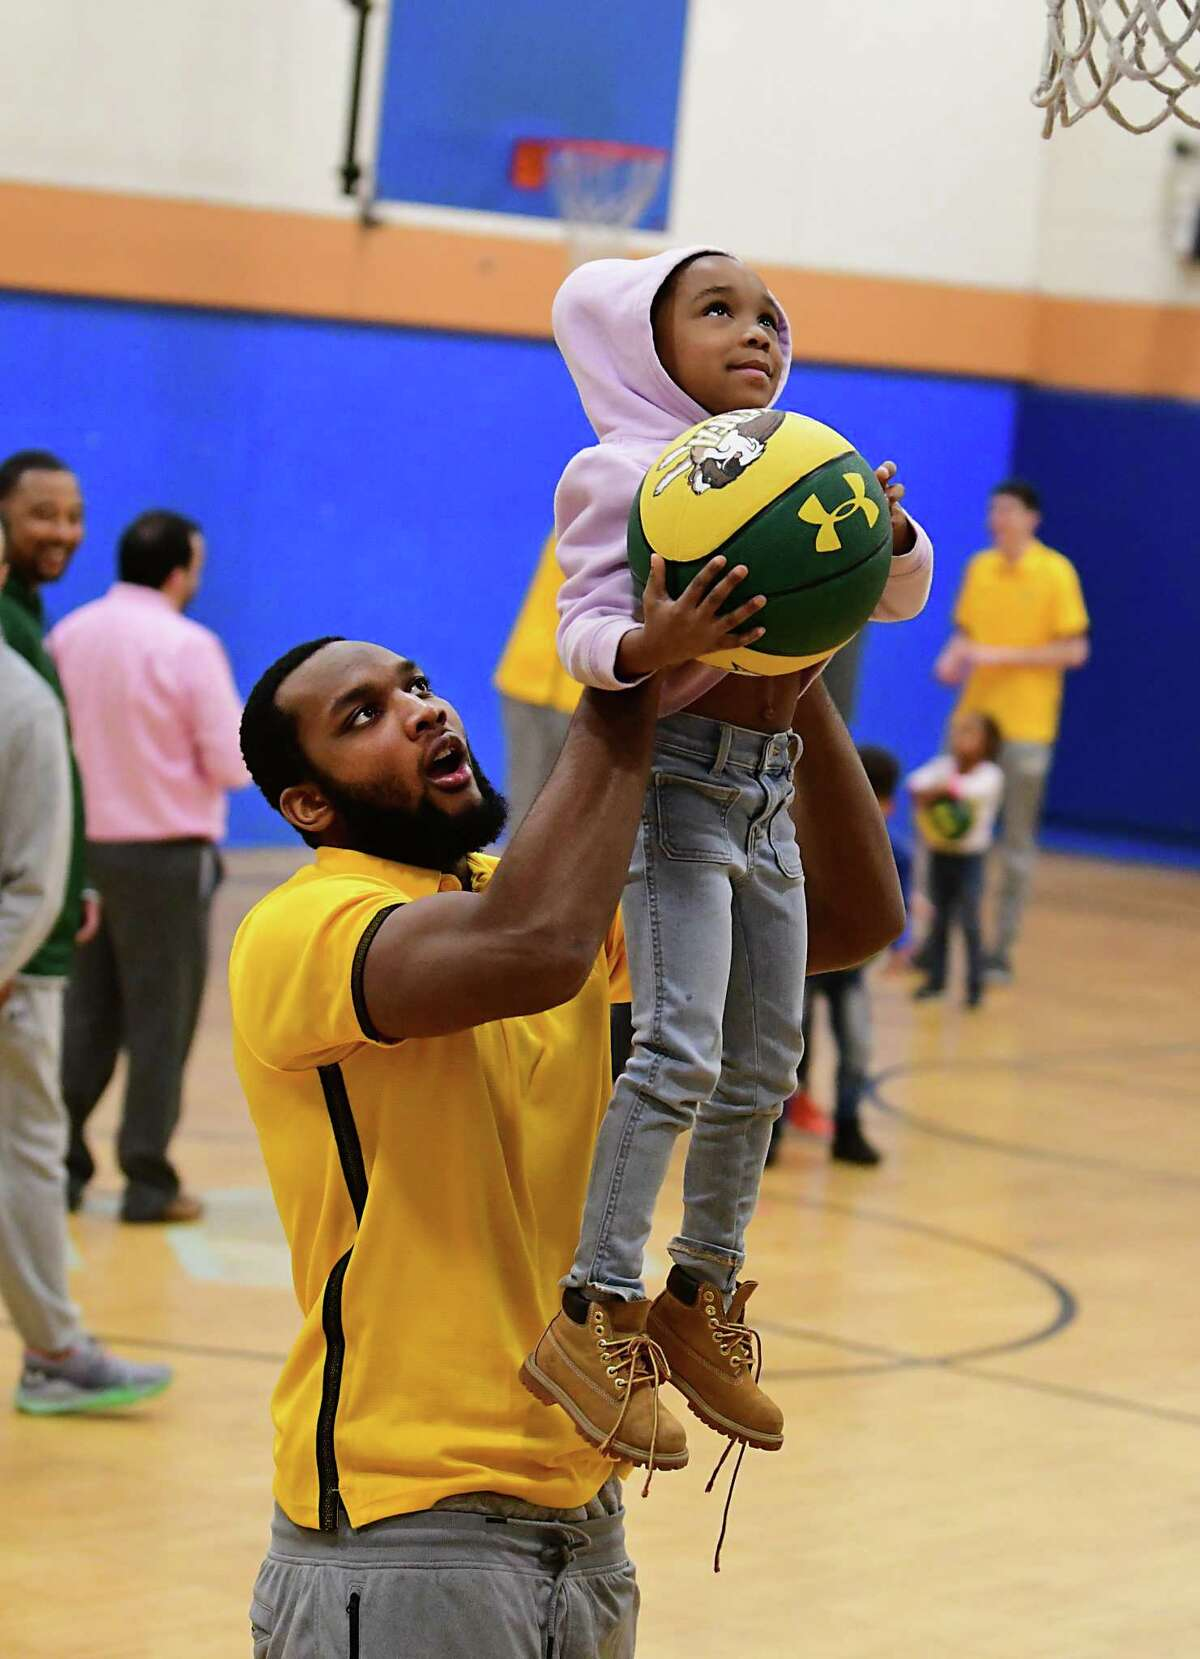 Siena basketball player Sammy Friday helps La'val Brown, 5, reach the basket at the Boys & Girls Clubs of the Capital Area?•s Troy Clubhouse on Monday, Dec. 16, 2019 in Troy, N.Y. Players and coaches from the Siena men?•s basketball team hosted a clinic for local young athletes. (Lori Van Buren/Times Union)